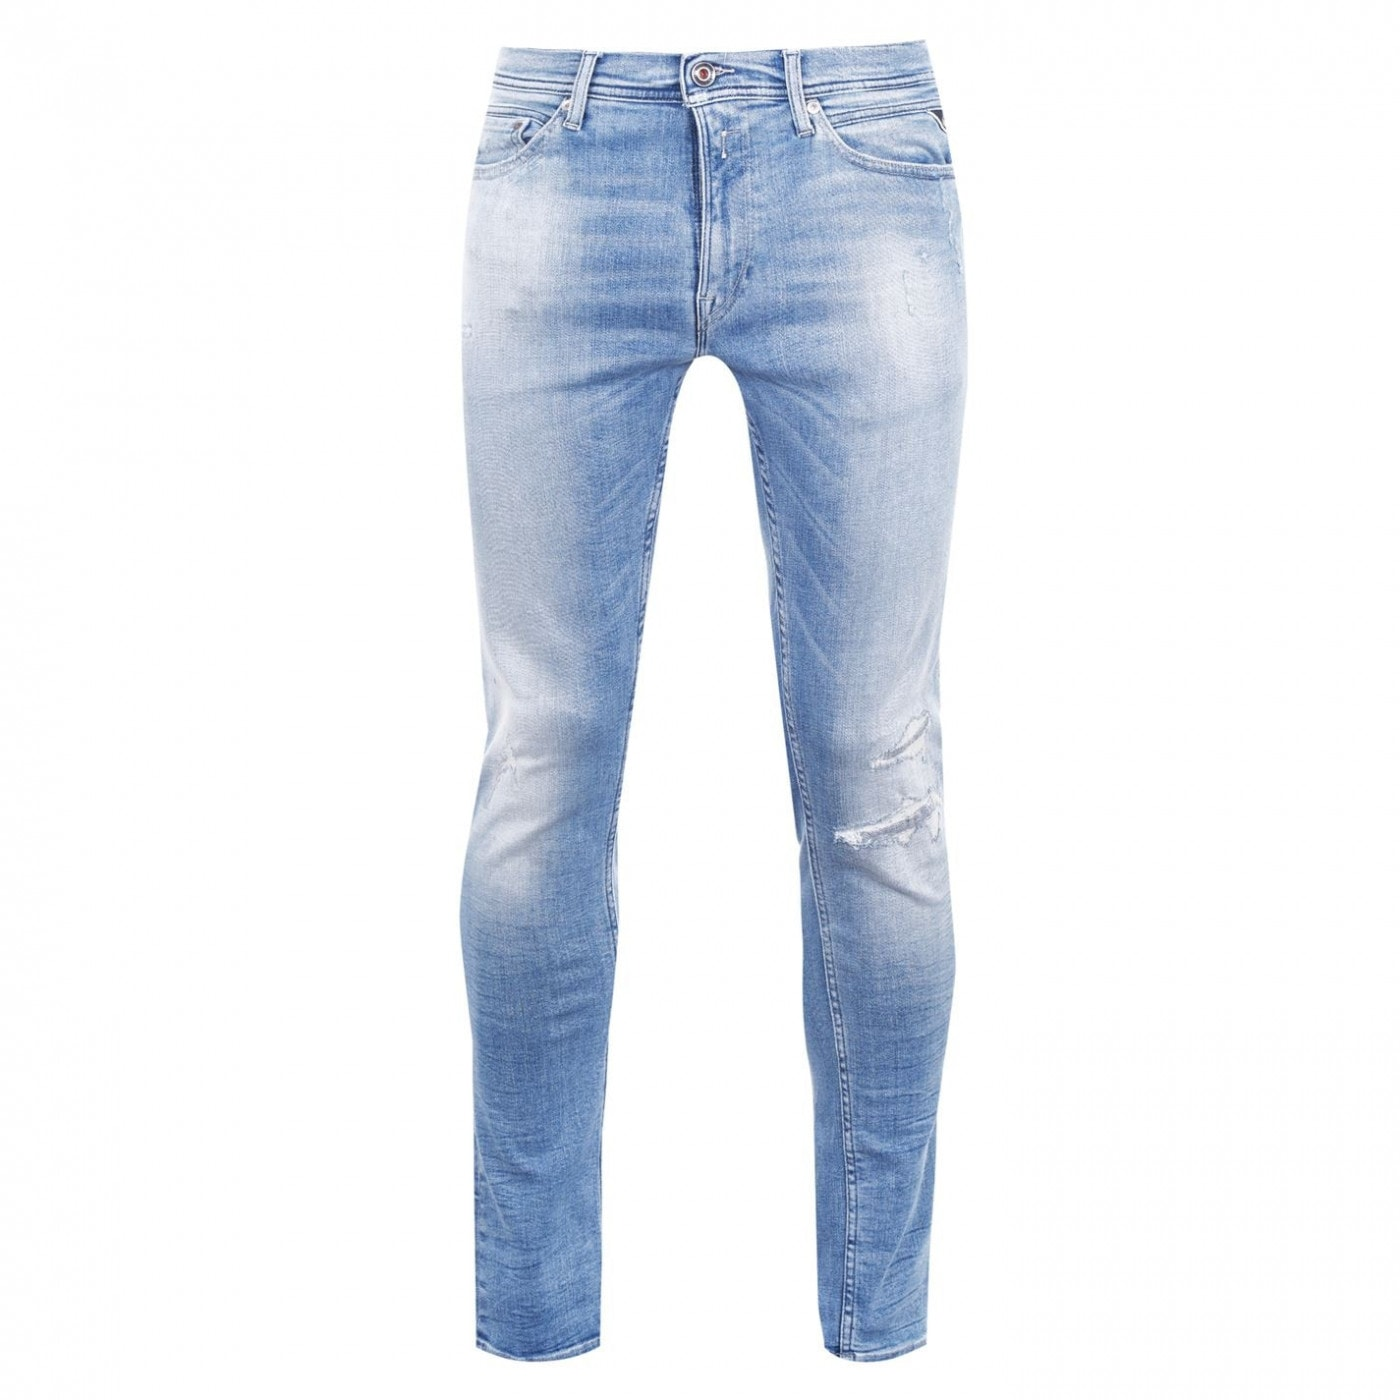 Replay Washed Skinny Jeans Mens